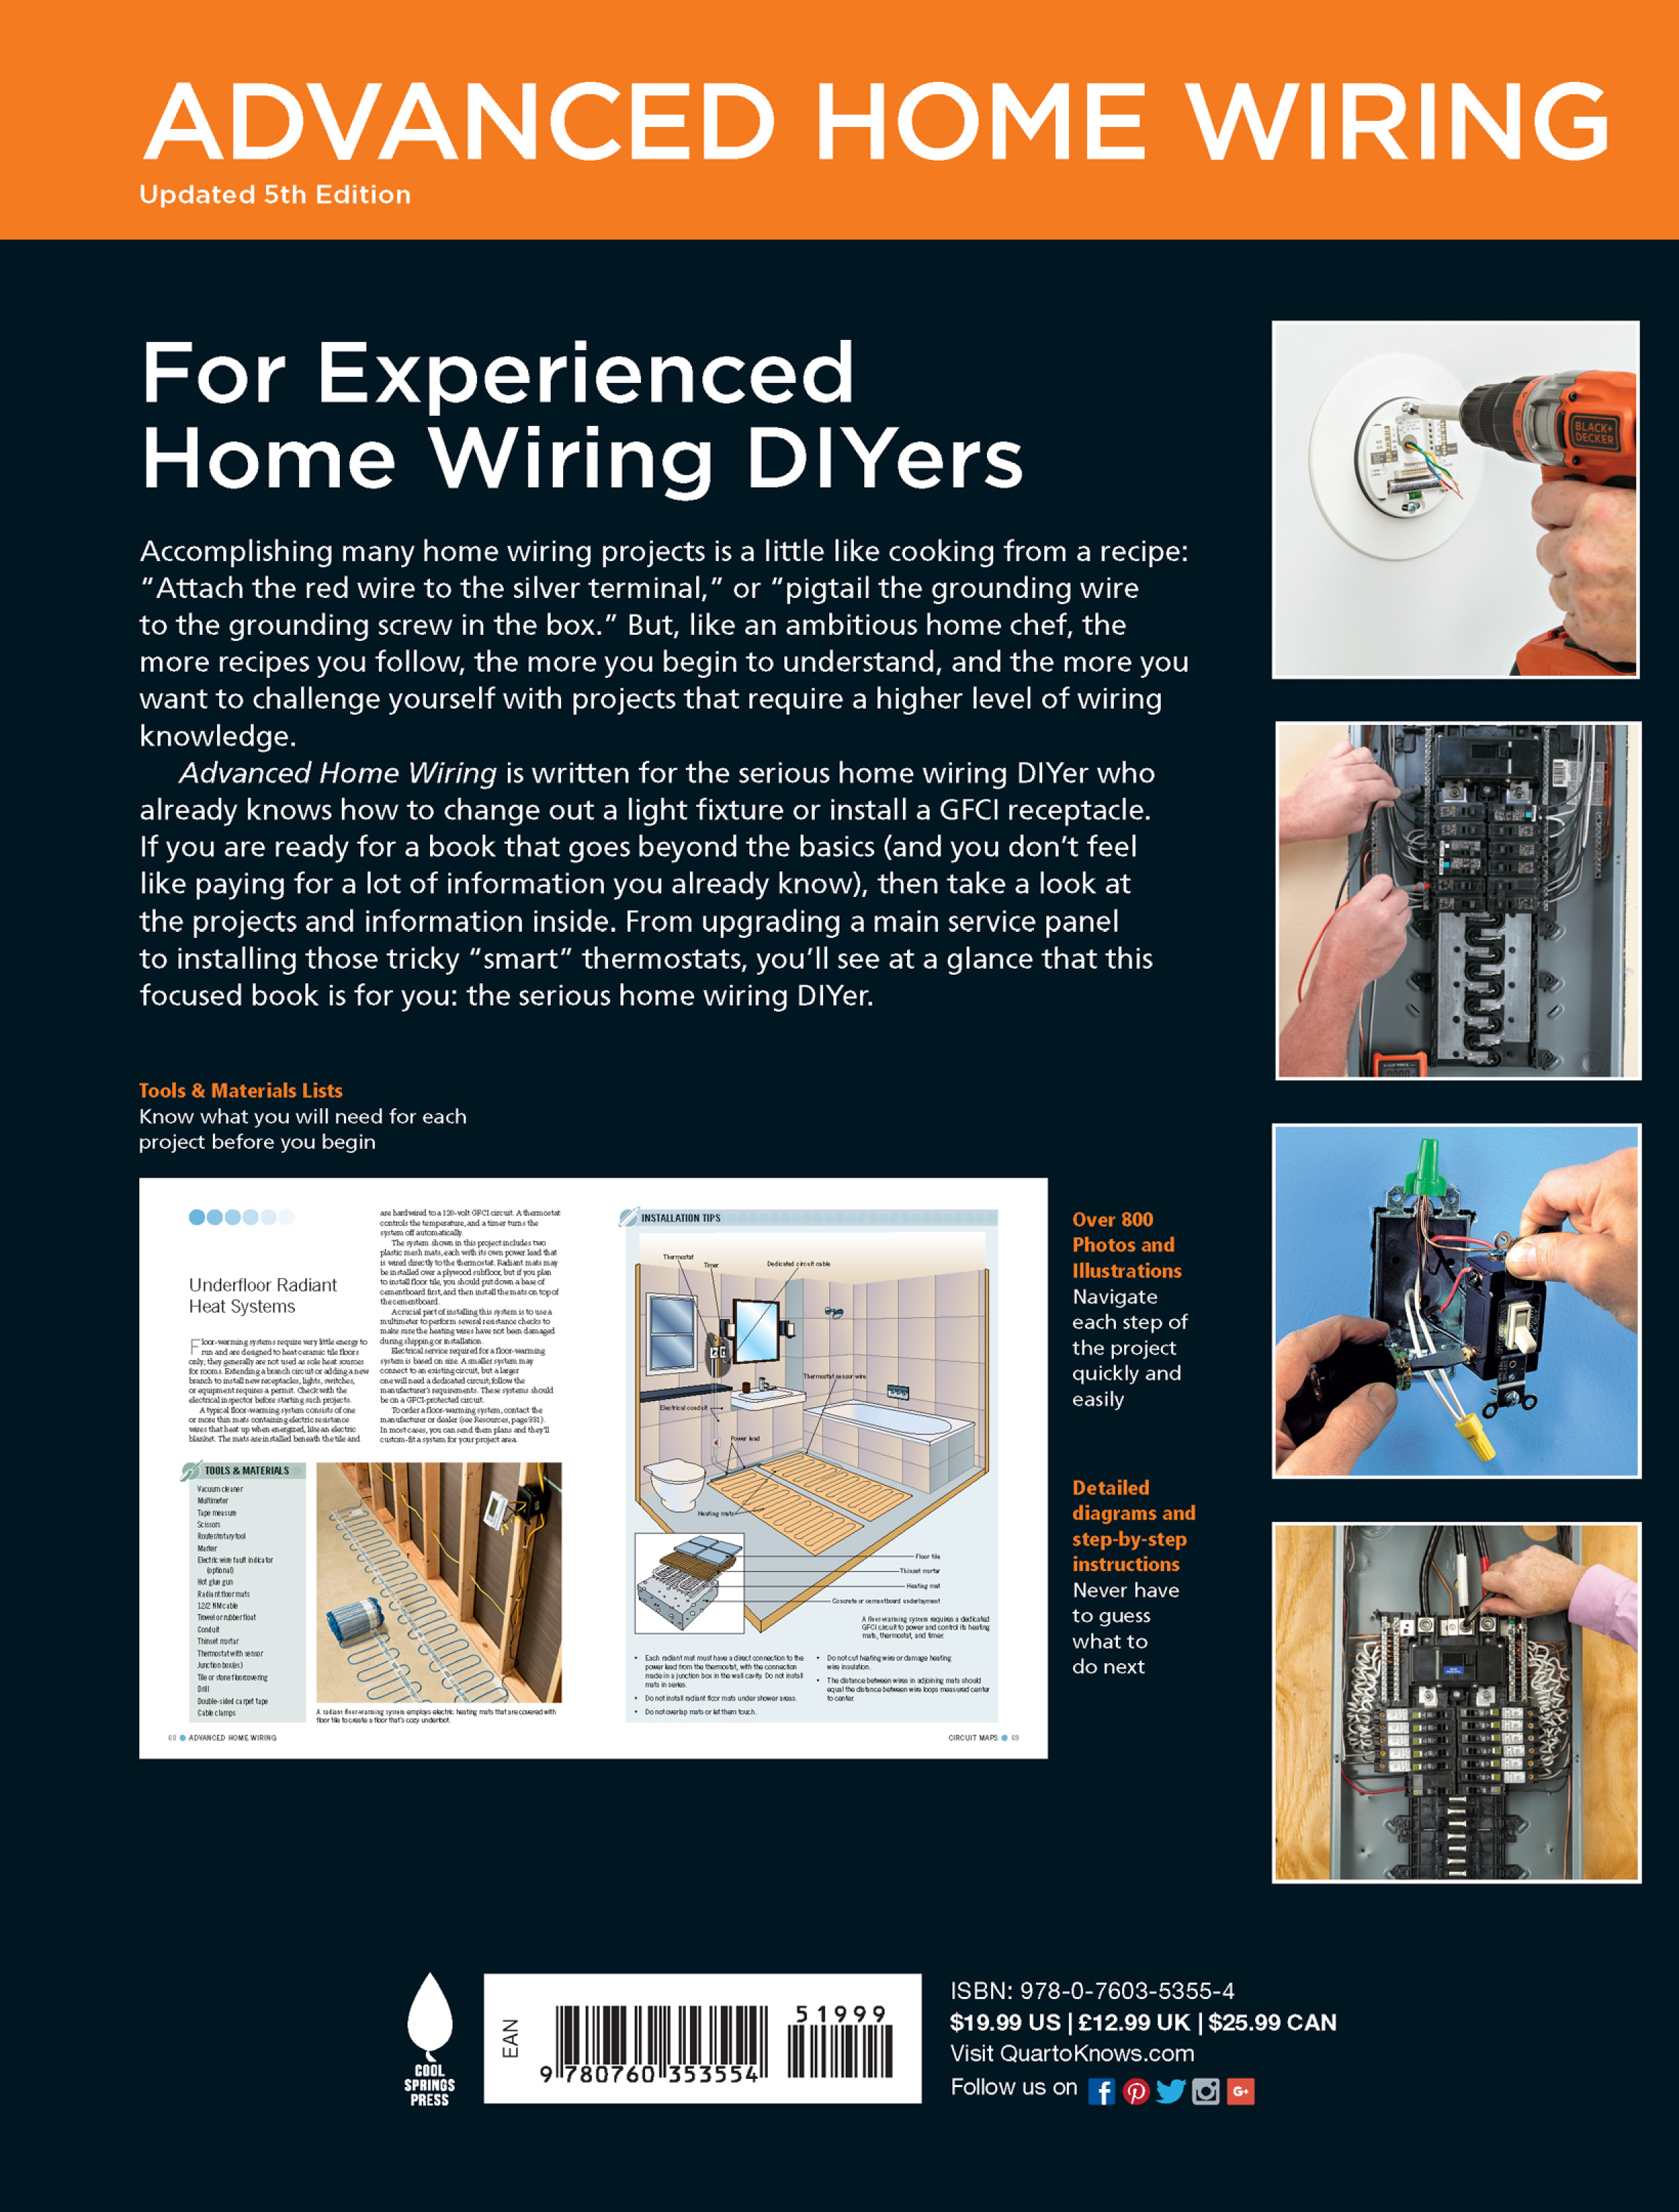 Smart Thermostats AFCI Protection + More Black /& Decker Advanced Home Wiring 5th Edition: Backup Power Panel Upgrades